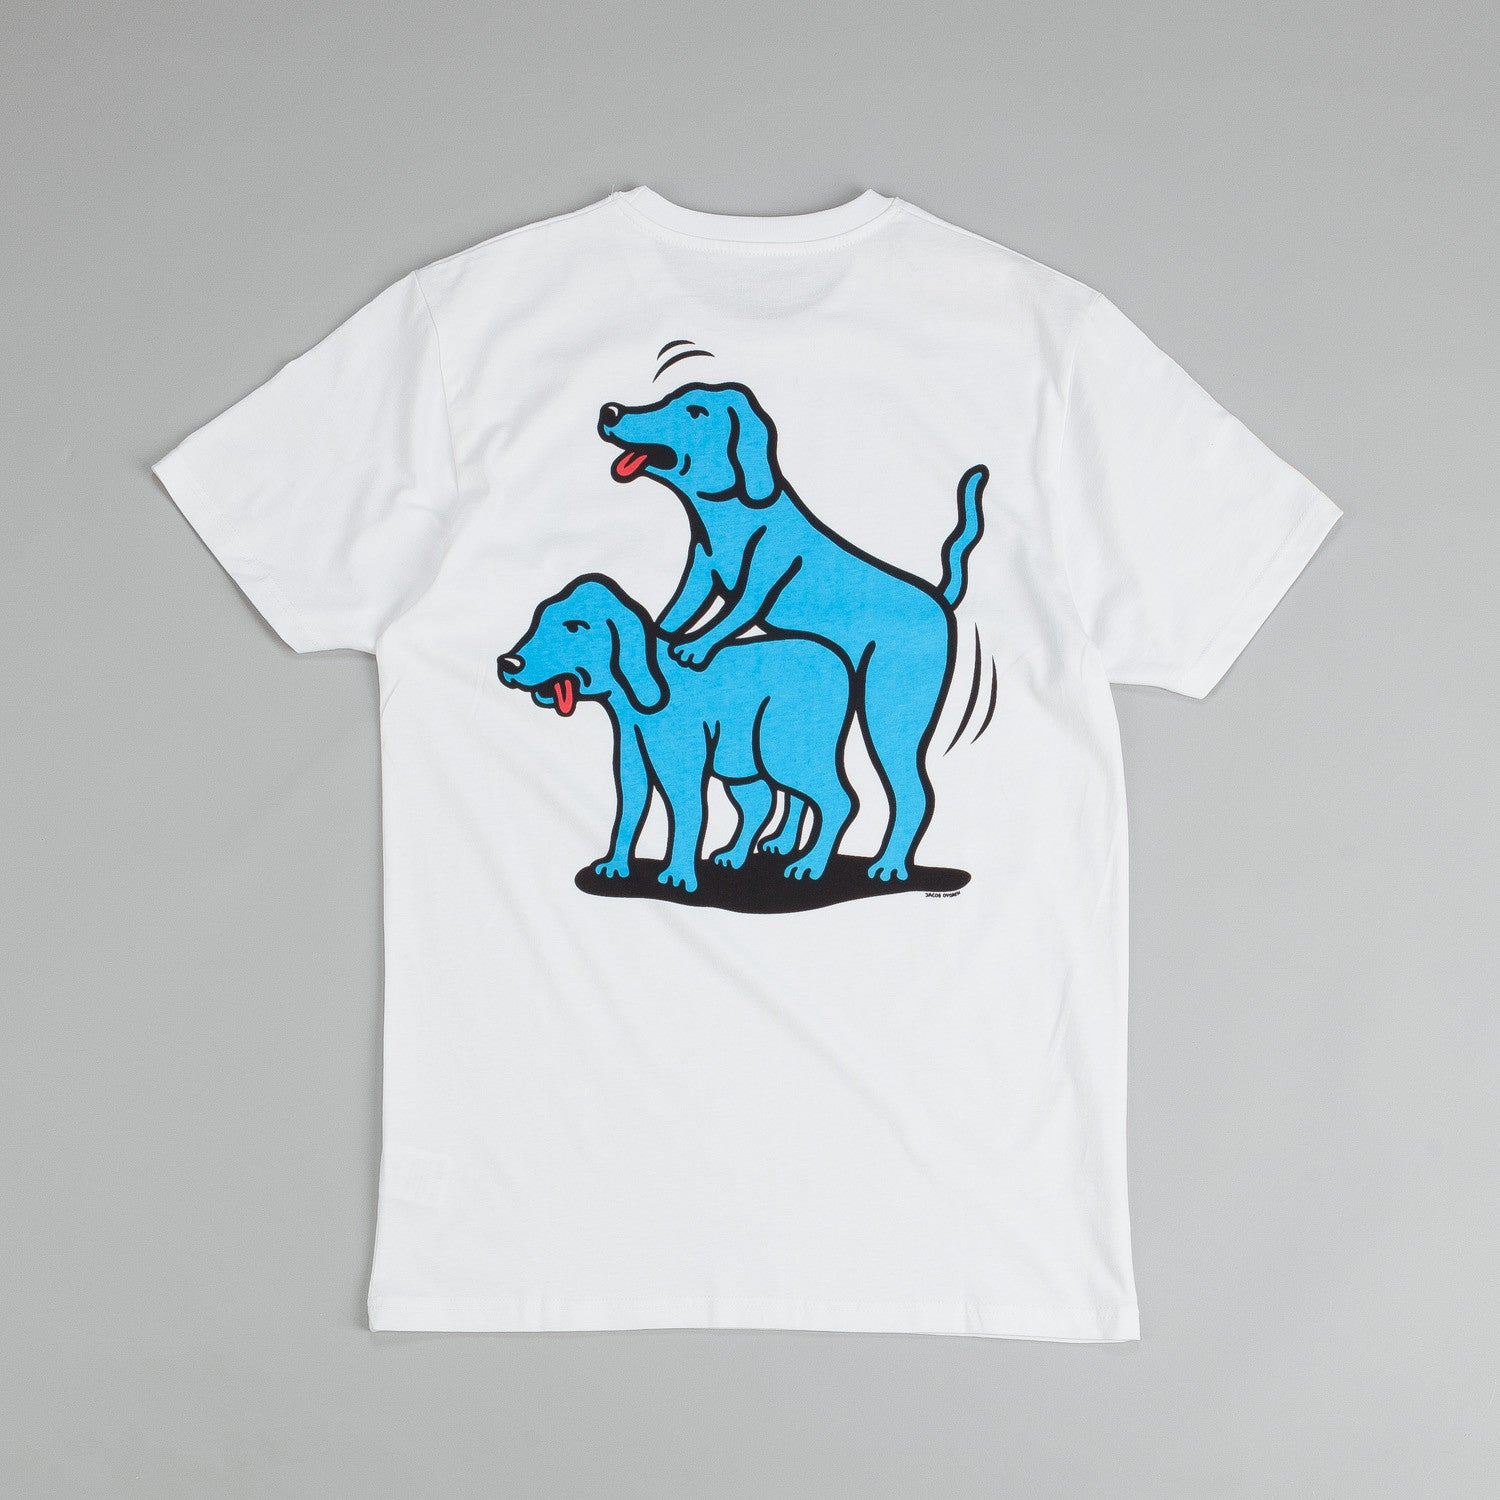 Polar Humping Dogs T Shirt White / Blue - Red - Black